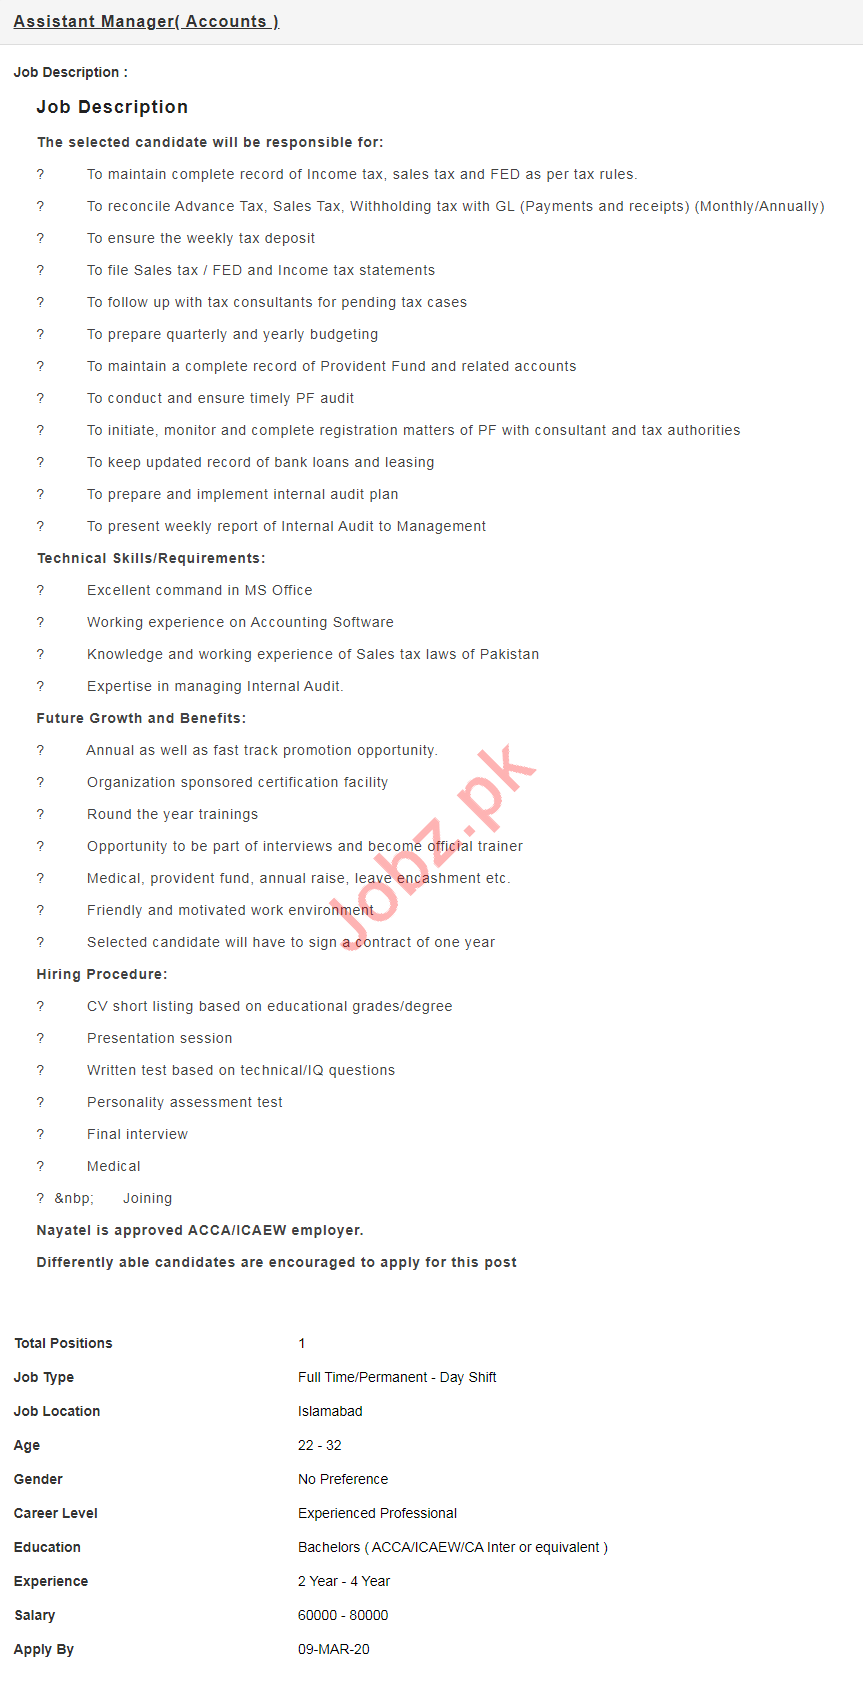 Nayatel Islamabad Jobs 2020 for Assistant Manager Accounts